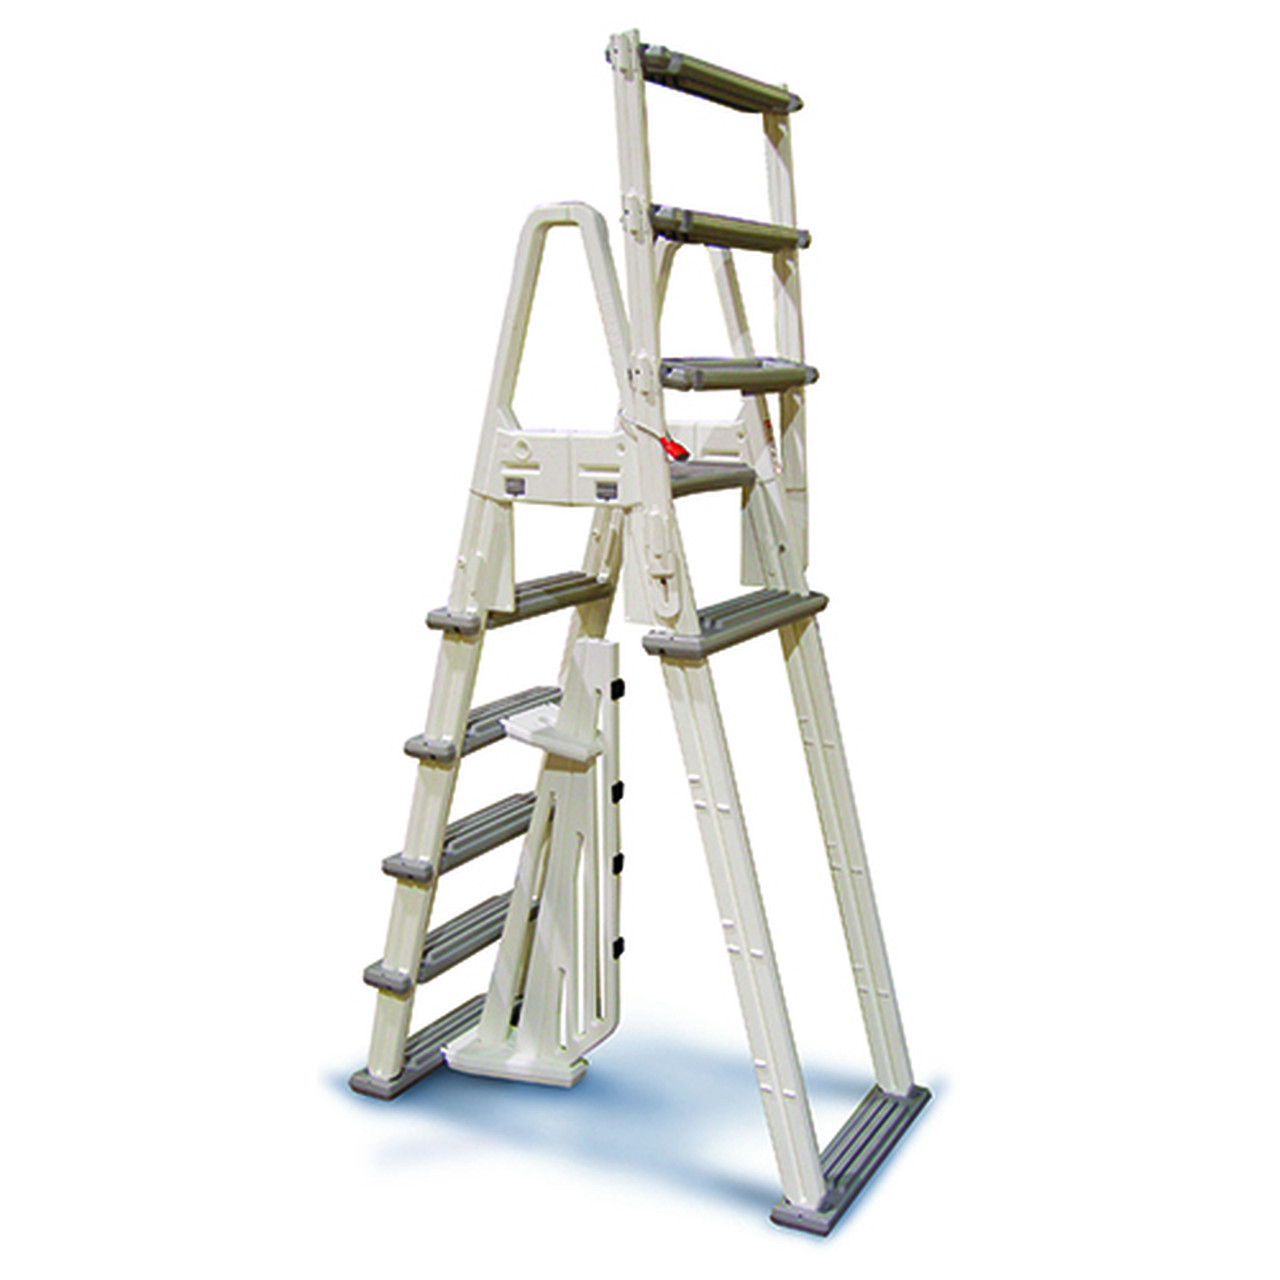 Best ideas about Above Ground Pool Ladders . Save or Pin A Frame Ground Pool Adjustable Ladder Confer Now.